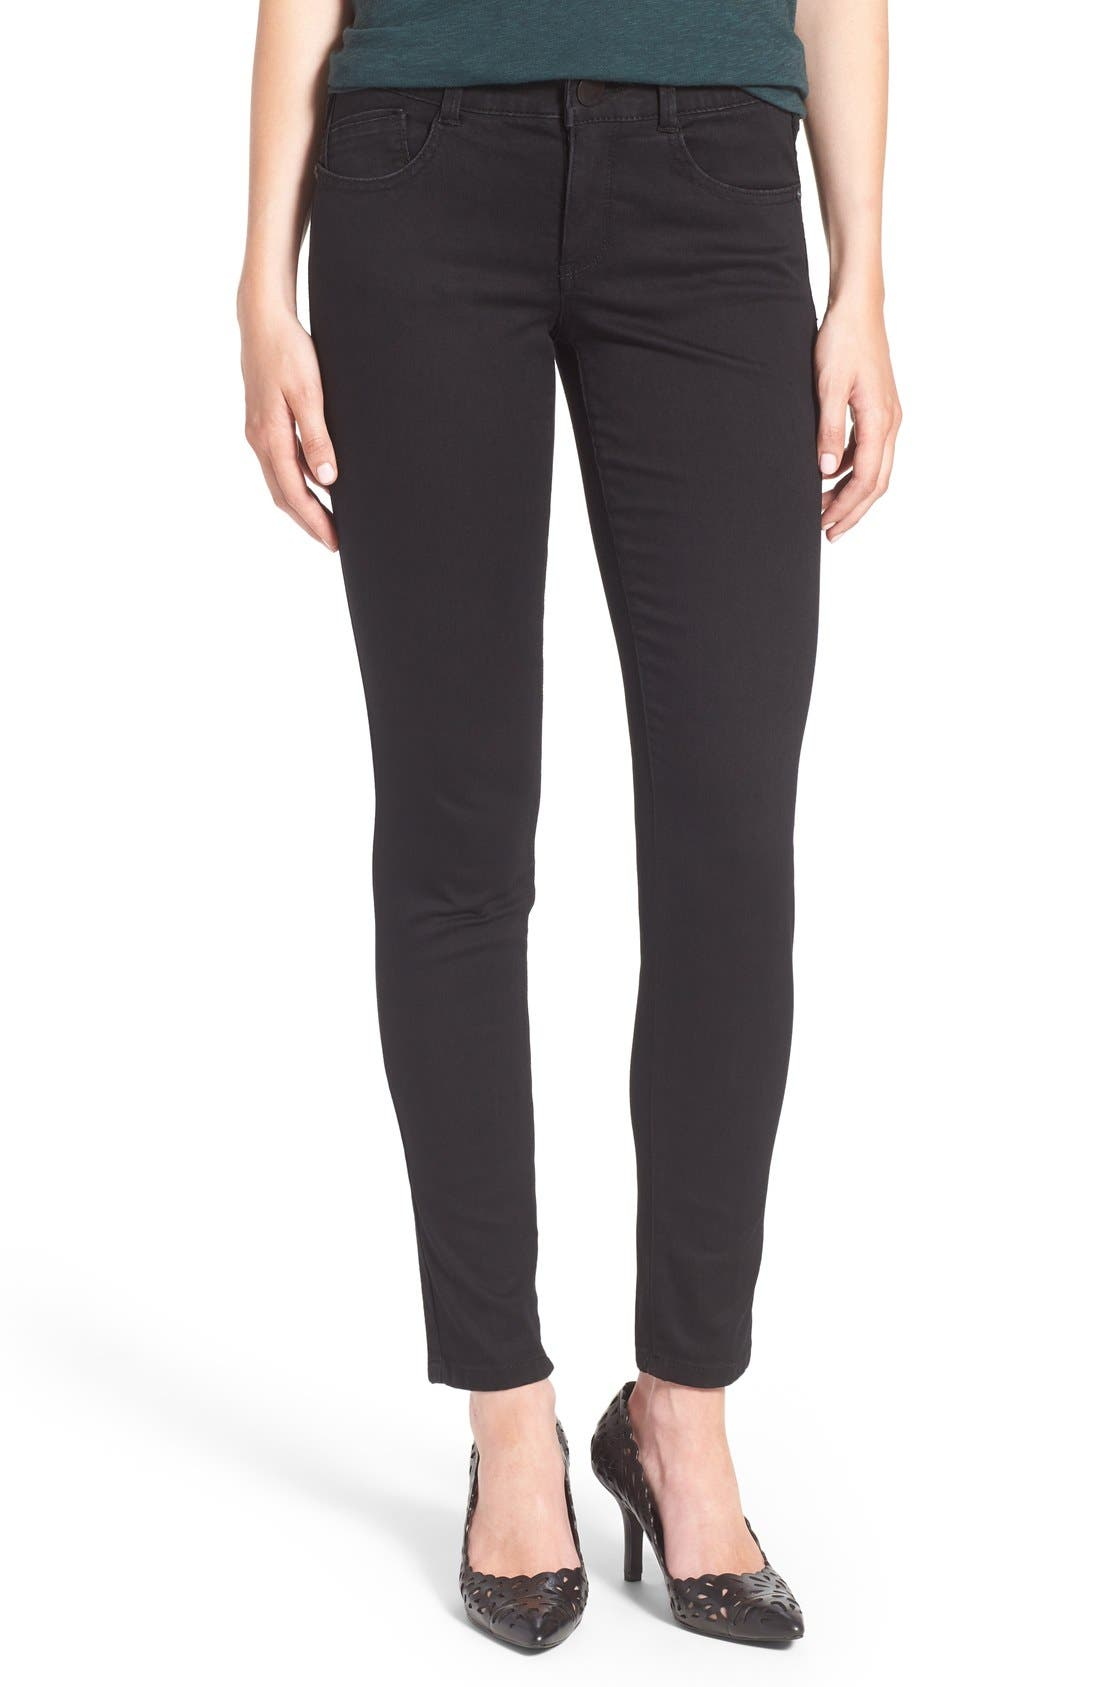 Ab-solution Stretch Skinny Jeans,                             Main thumbnail 1, color,                             Black